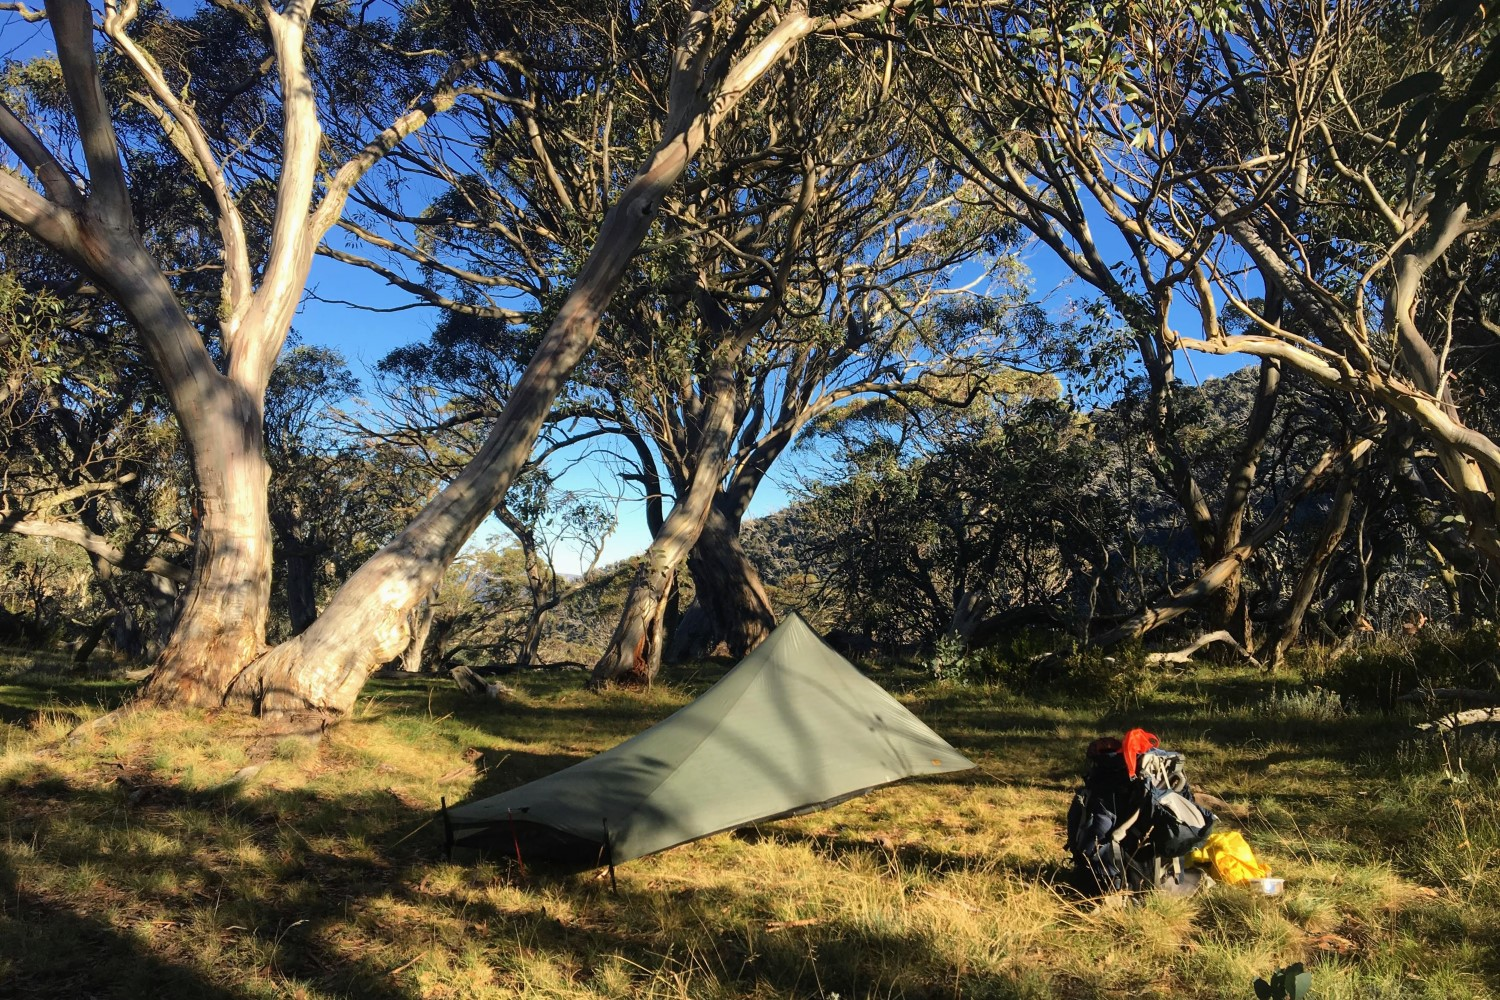 A Tarptent pitched in the Australian Alps.  Tarptent  — who make backpacking shelters — are an awesome outdoor brand and a perfect example of innovative gear coming out of the cottage industry.